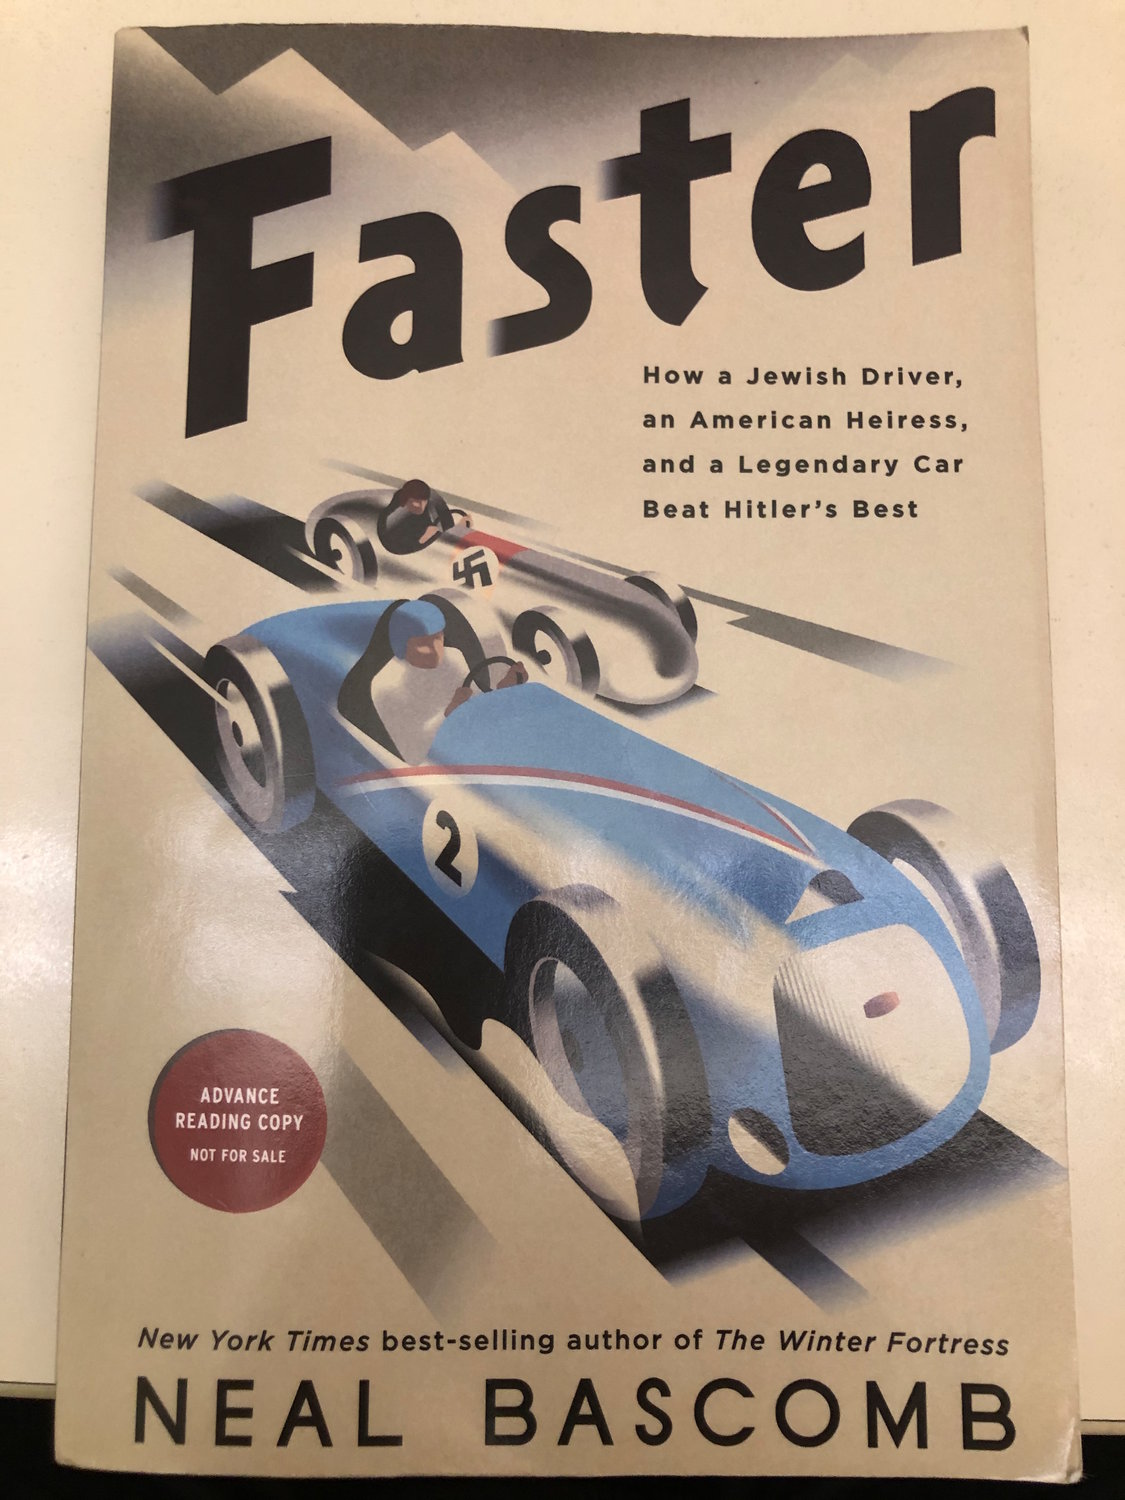 Neal Bascomb's nonfiction work 'Faster' recalls a long ago true story that blends culture, sports and politics.